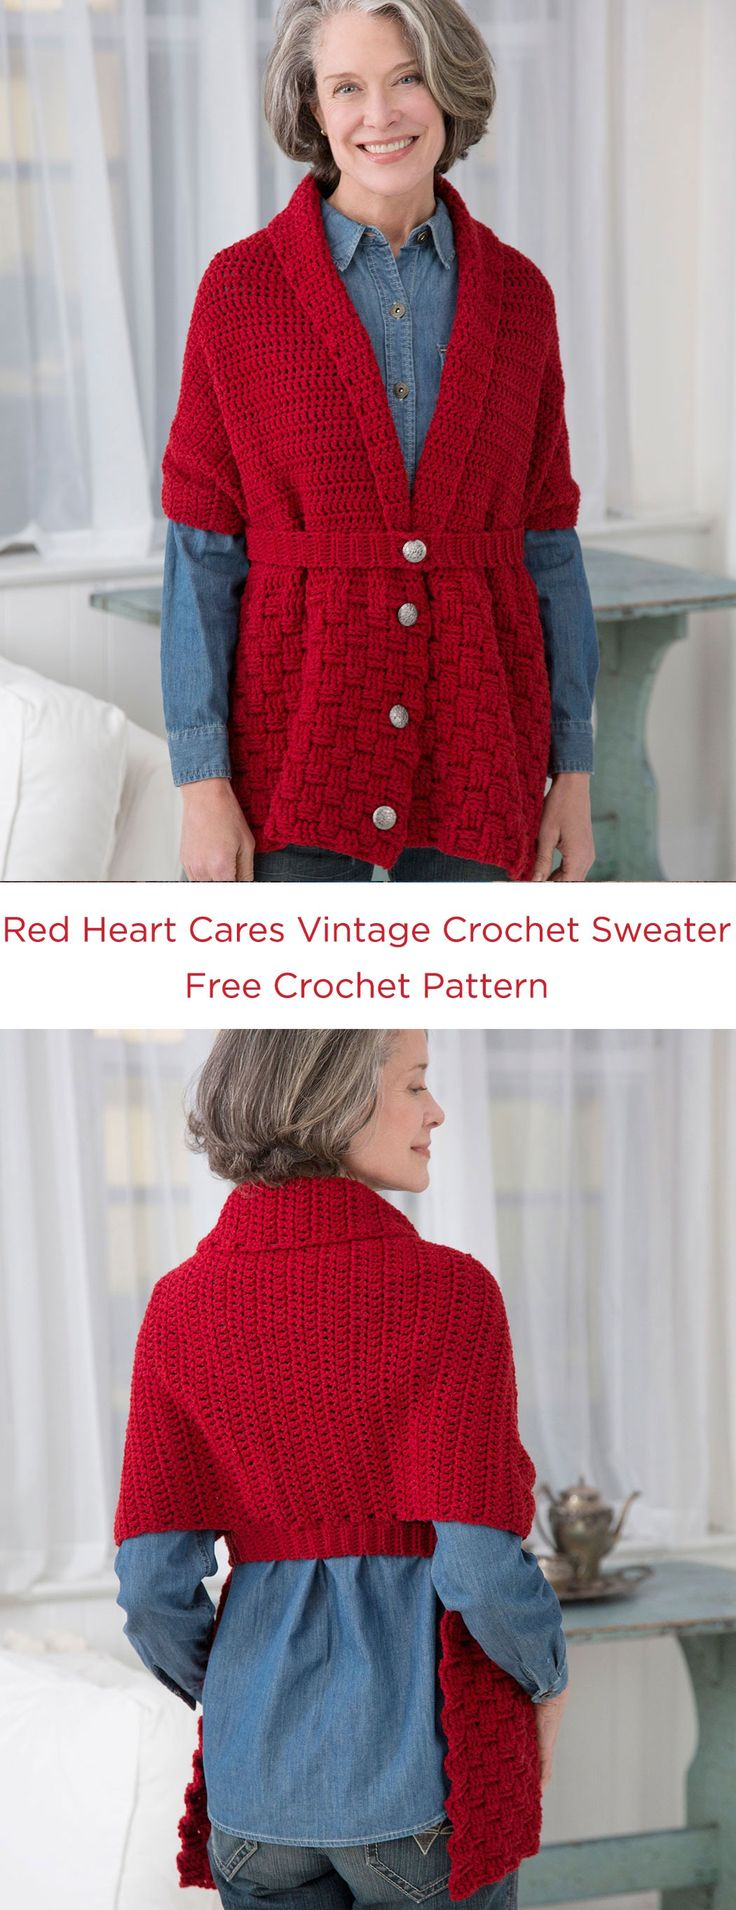 """Red Heart Cares Vintage Crochet Sweater Free Crochet Pattern in Red Heart Yarns -- This modern crochet wrap was actually inspired by a """"sweater-scarf"""" from 1917, in the early years that women supported the troops by working with the Red Cross. This easy to wear style is perfect for being active or relaxing."""